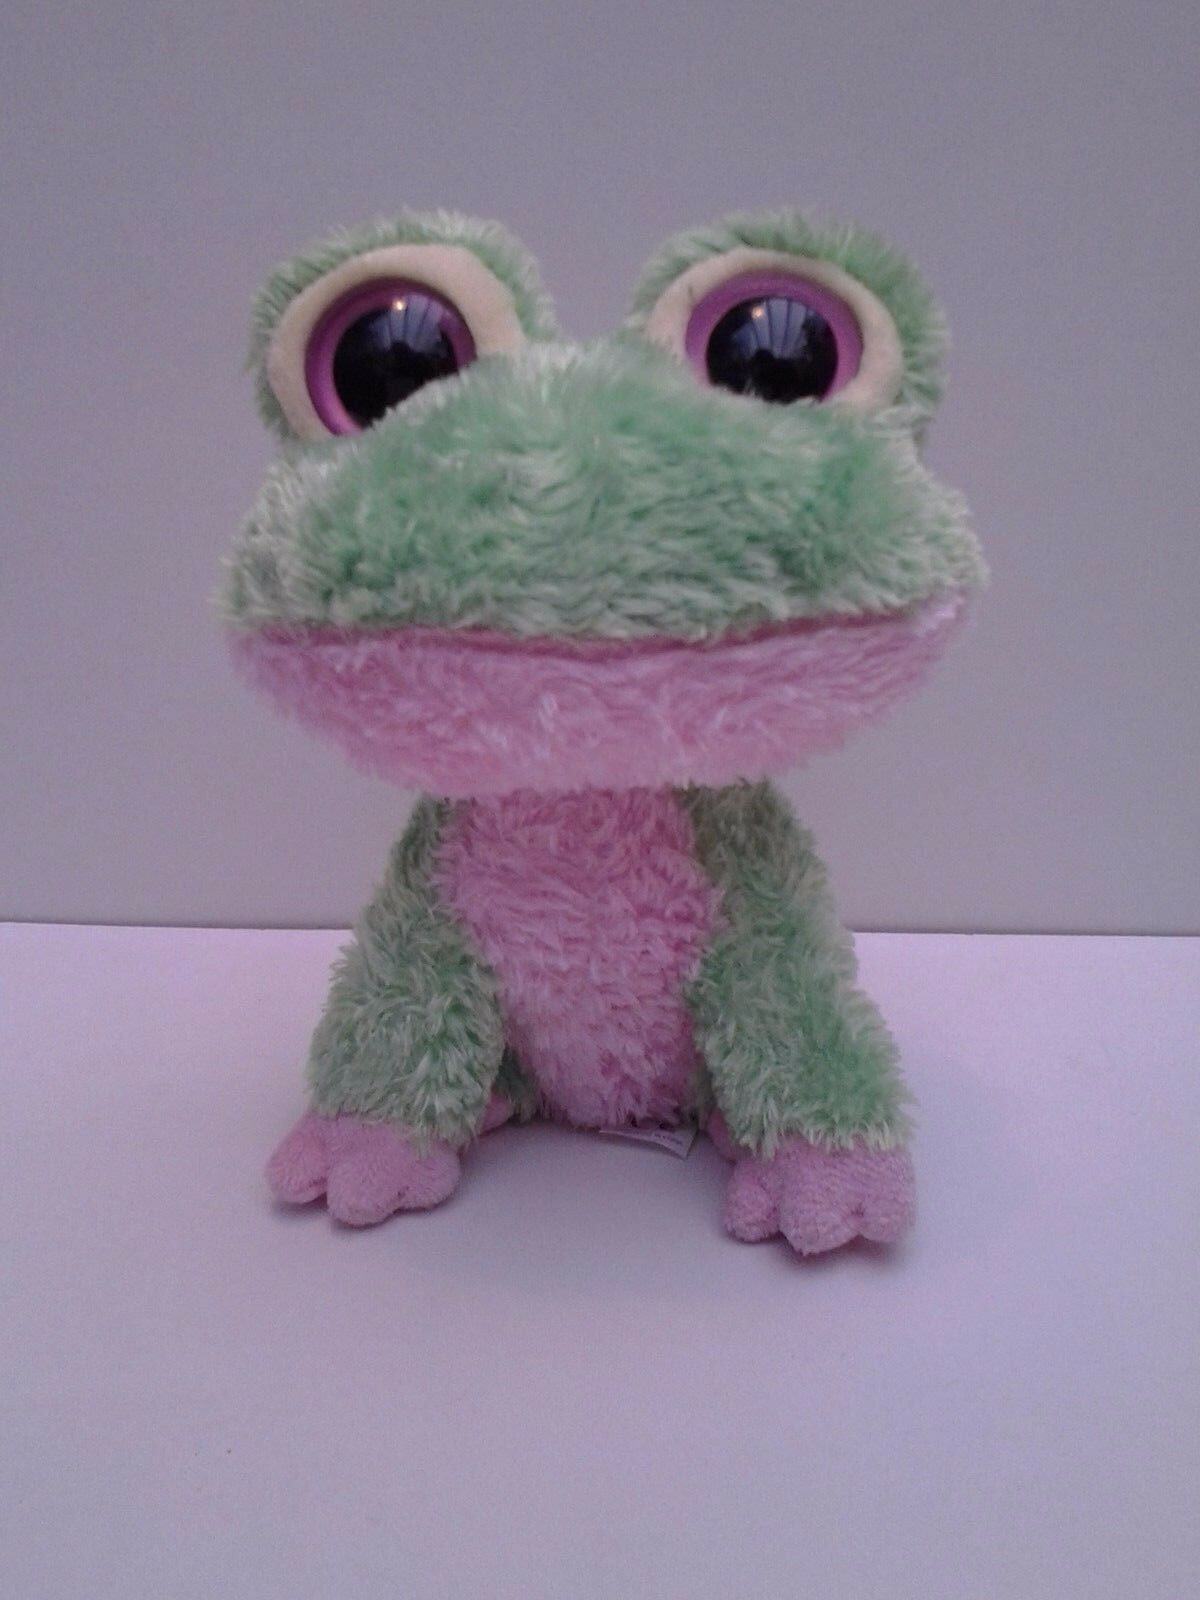 Ty Beanie Babies Boos Boo Buddy 2009 Kiwi the Green & Pink Frog Soft Toy 6